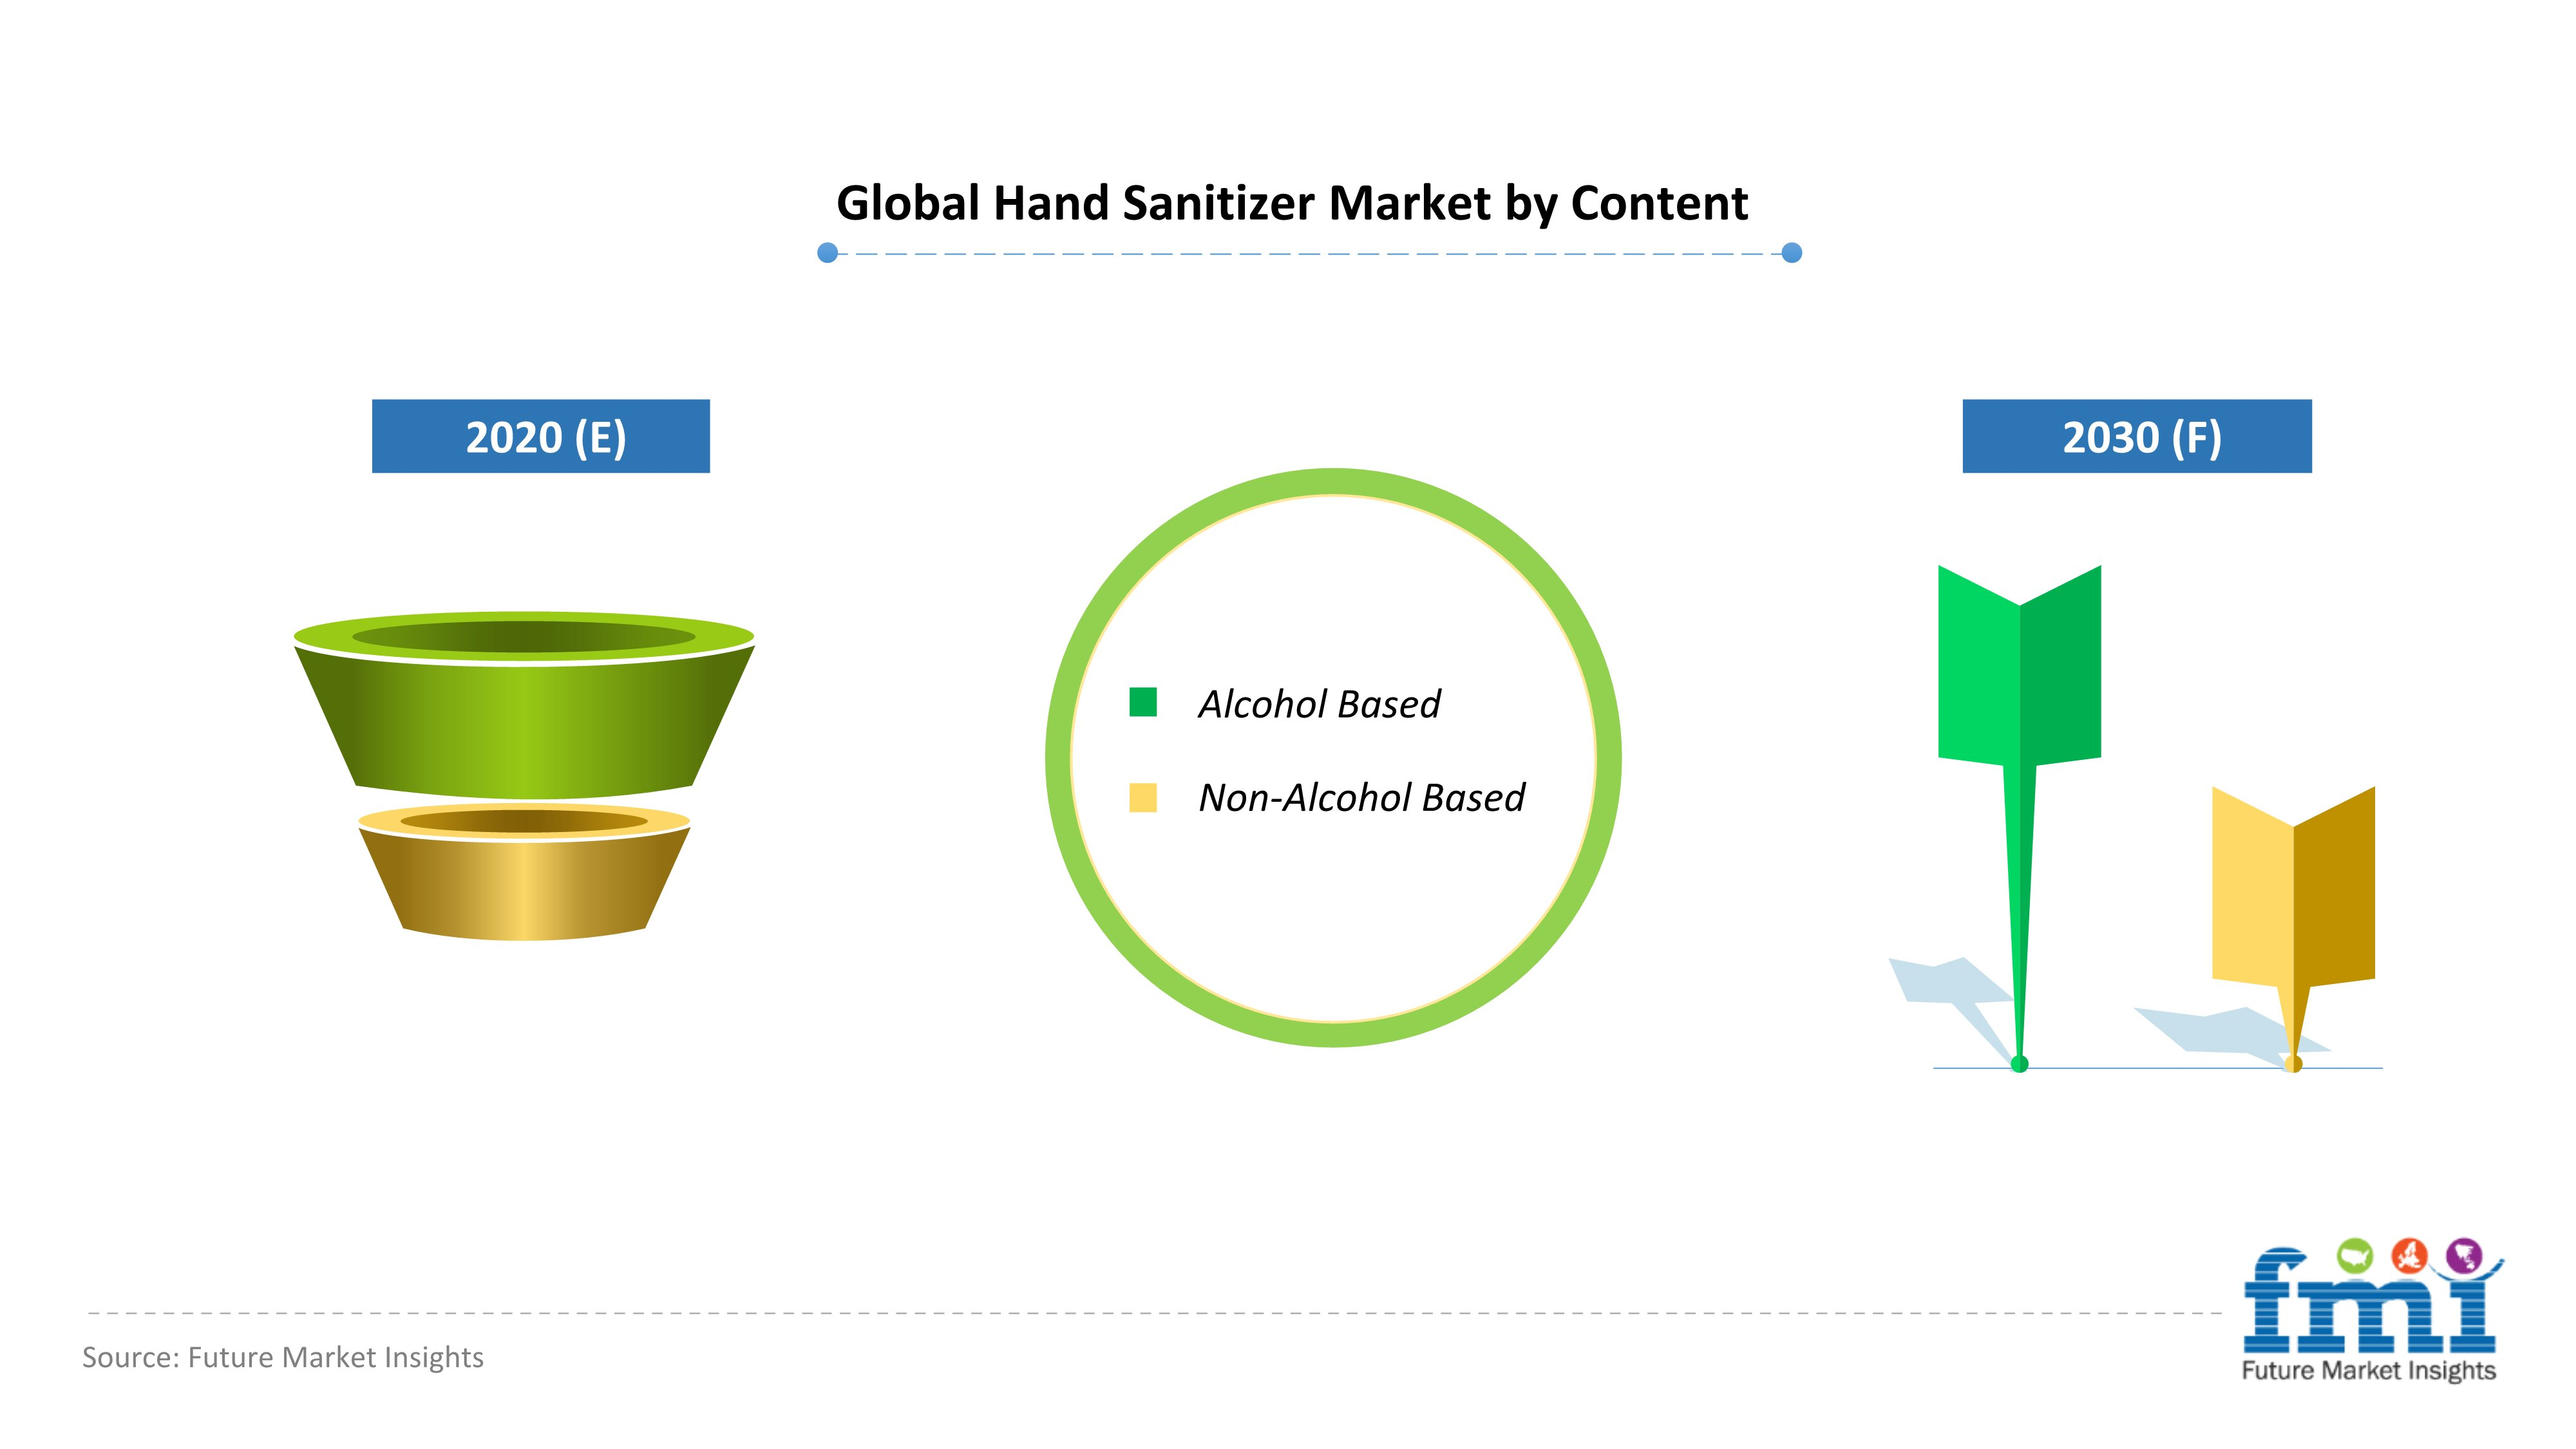 Global Hand Sanitizer Market by Content